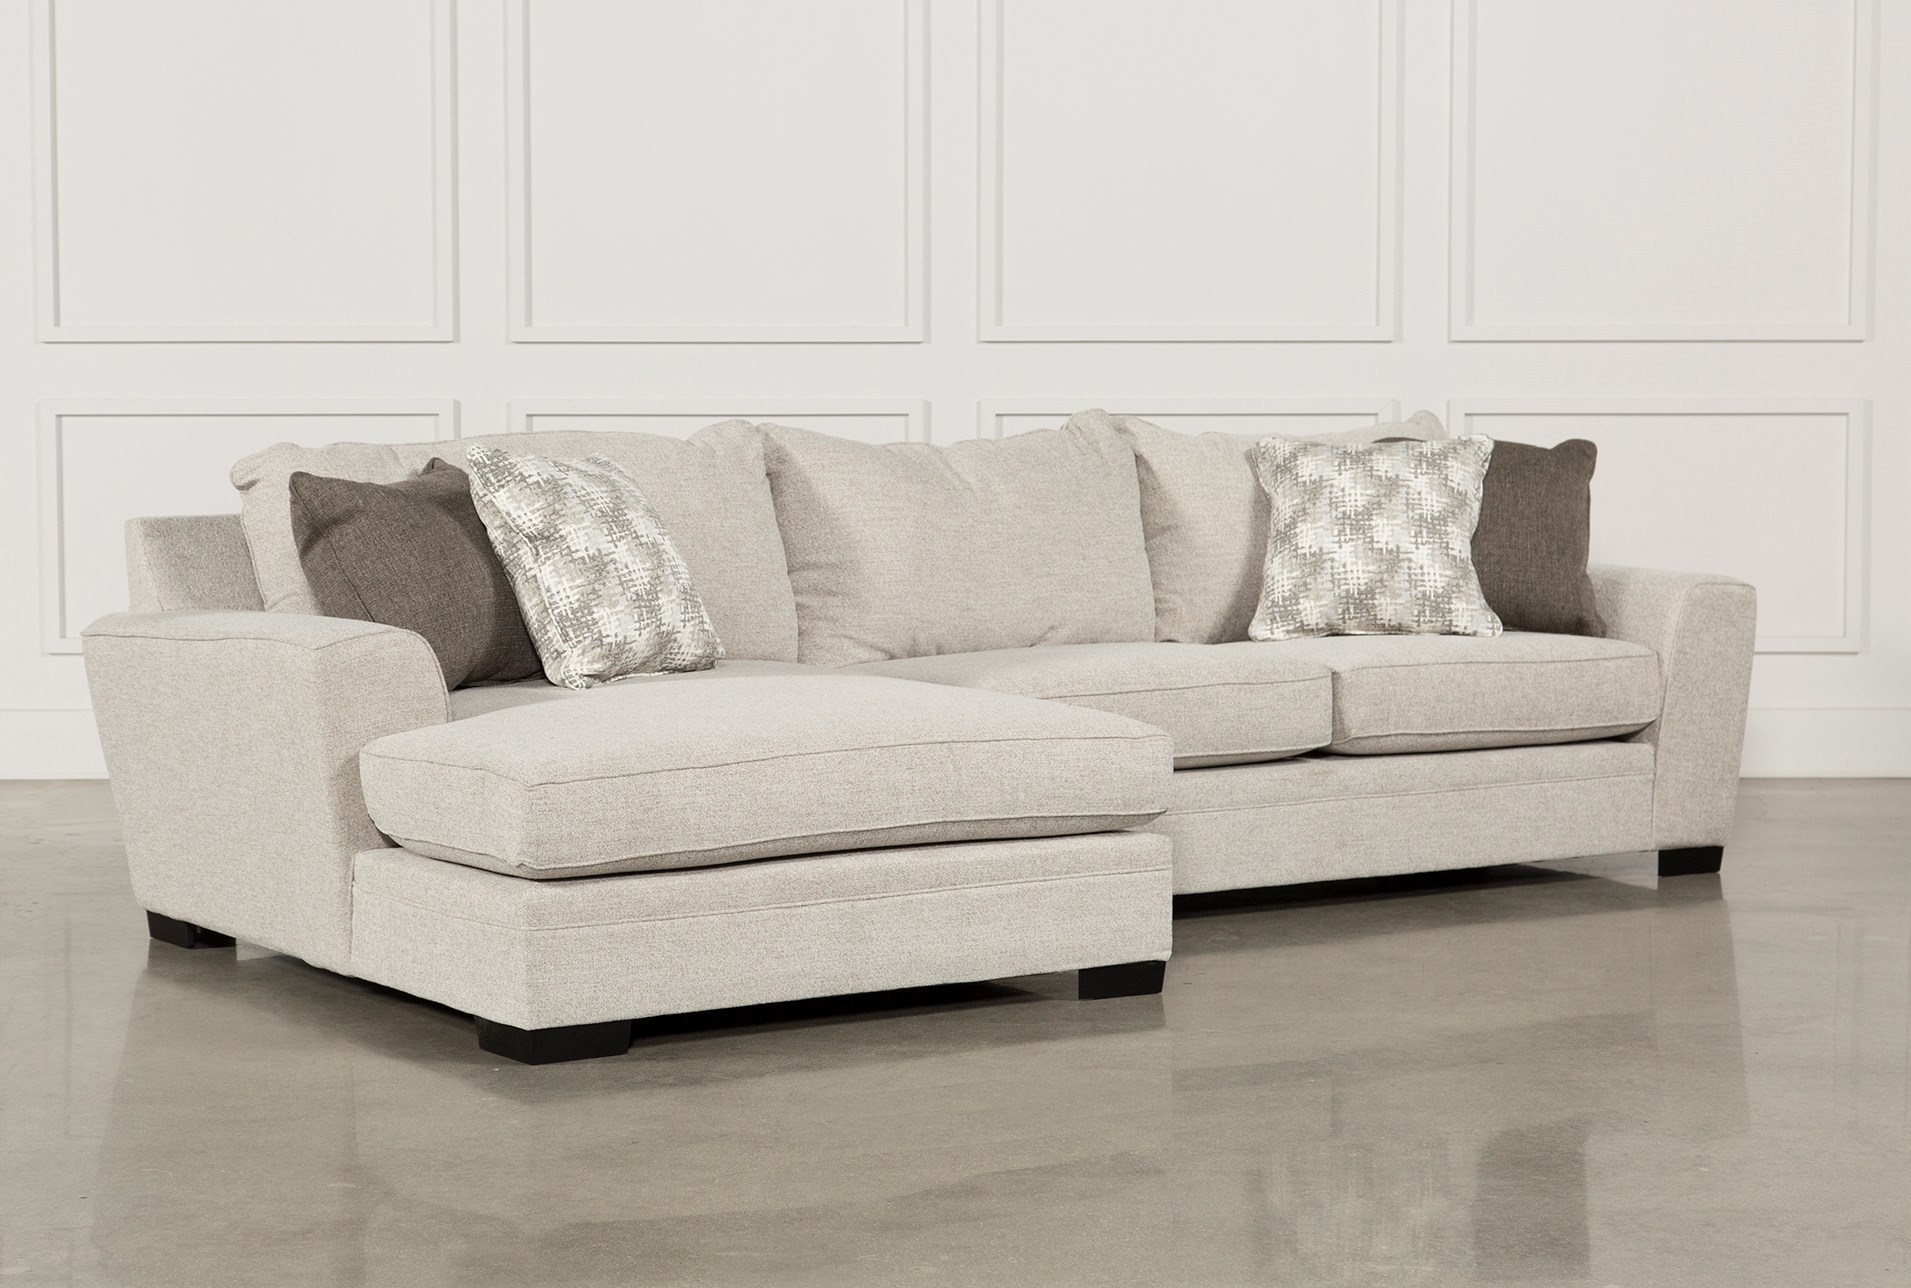 Living Spaces Sectional Couches Josephine 2 Piece W Raf Sofa 222882 throughout Josephine 2 Piece Sectionals With Raf Sofa (Image 17 of 30)